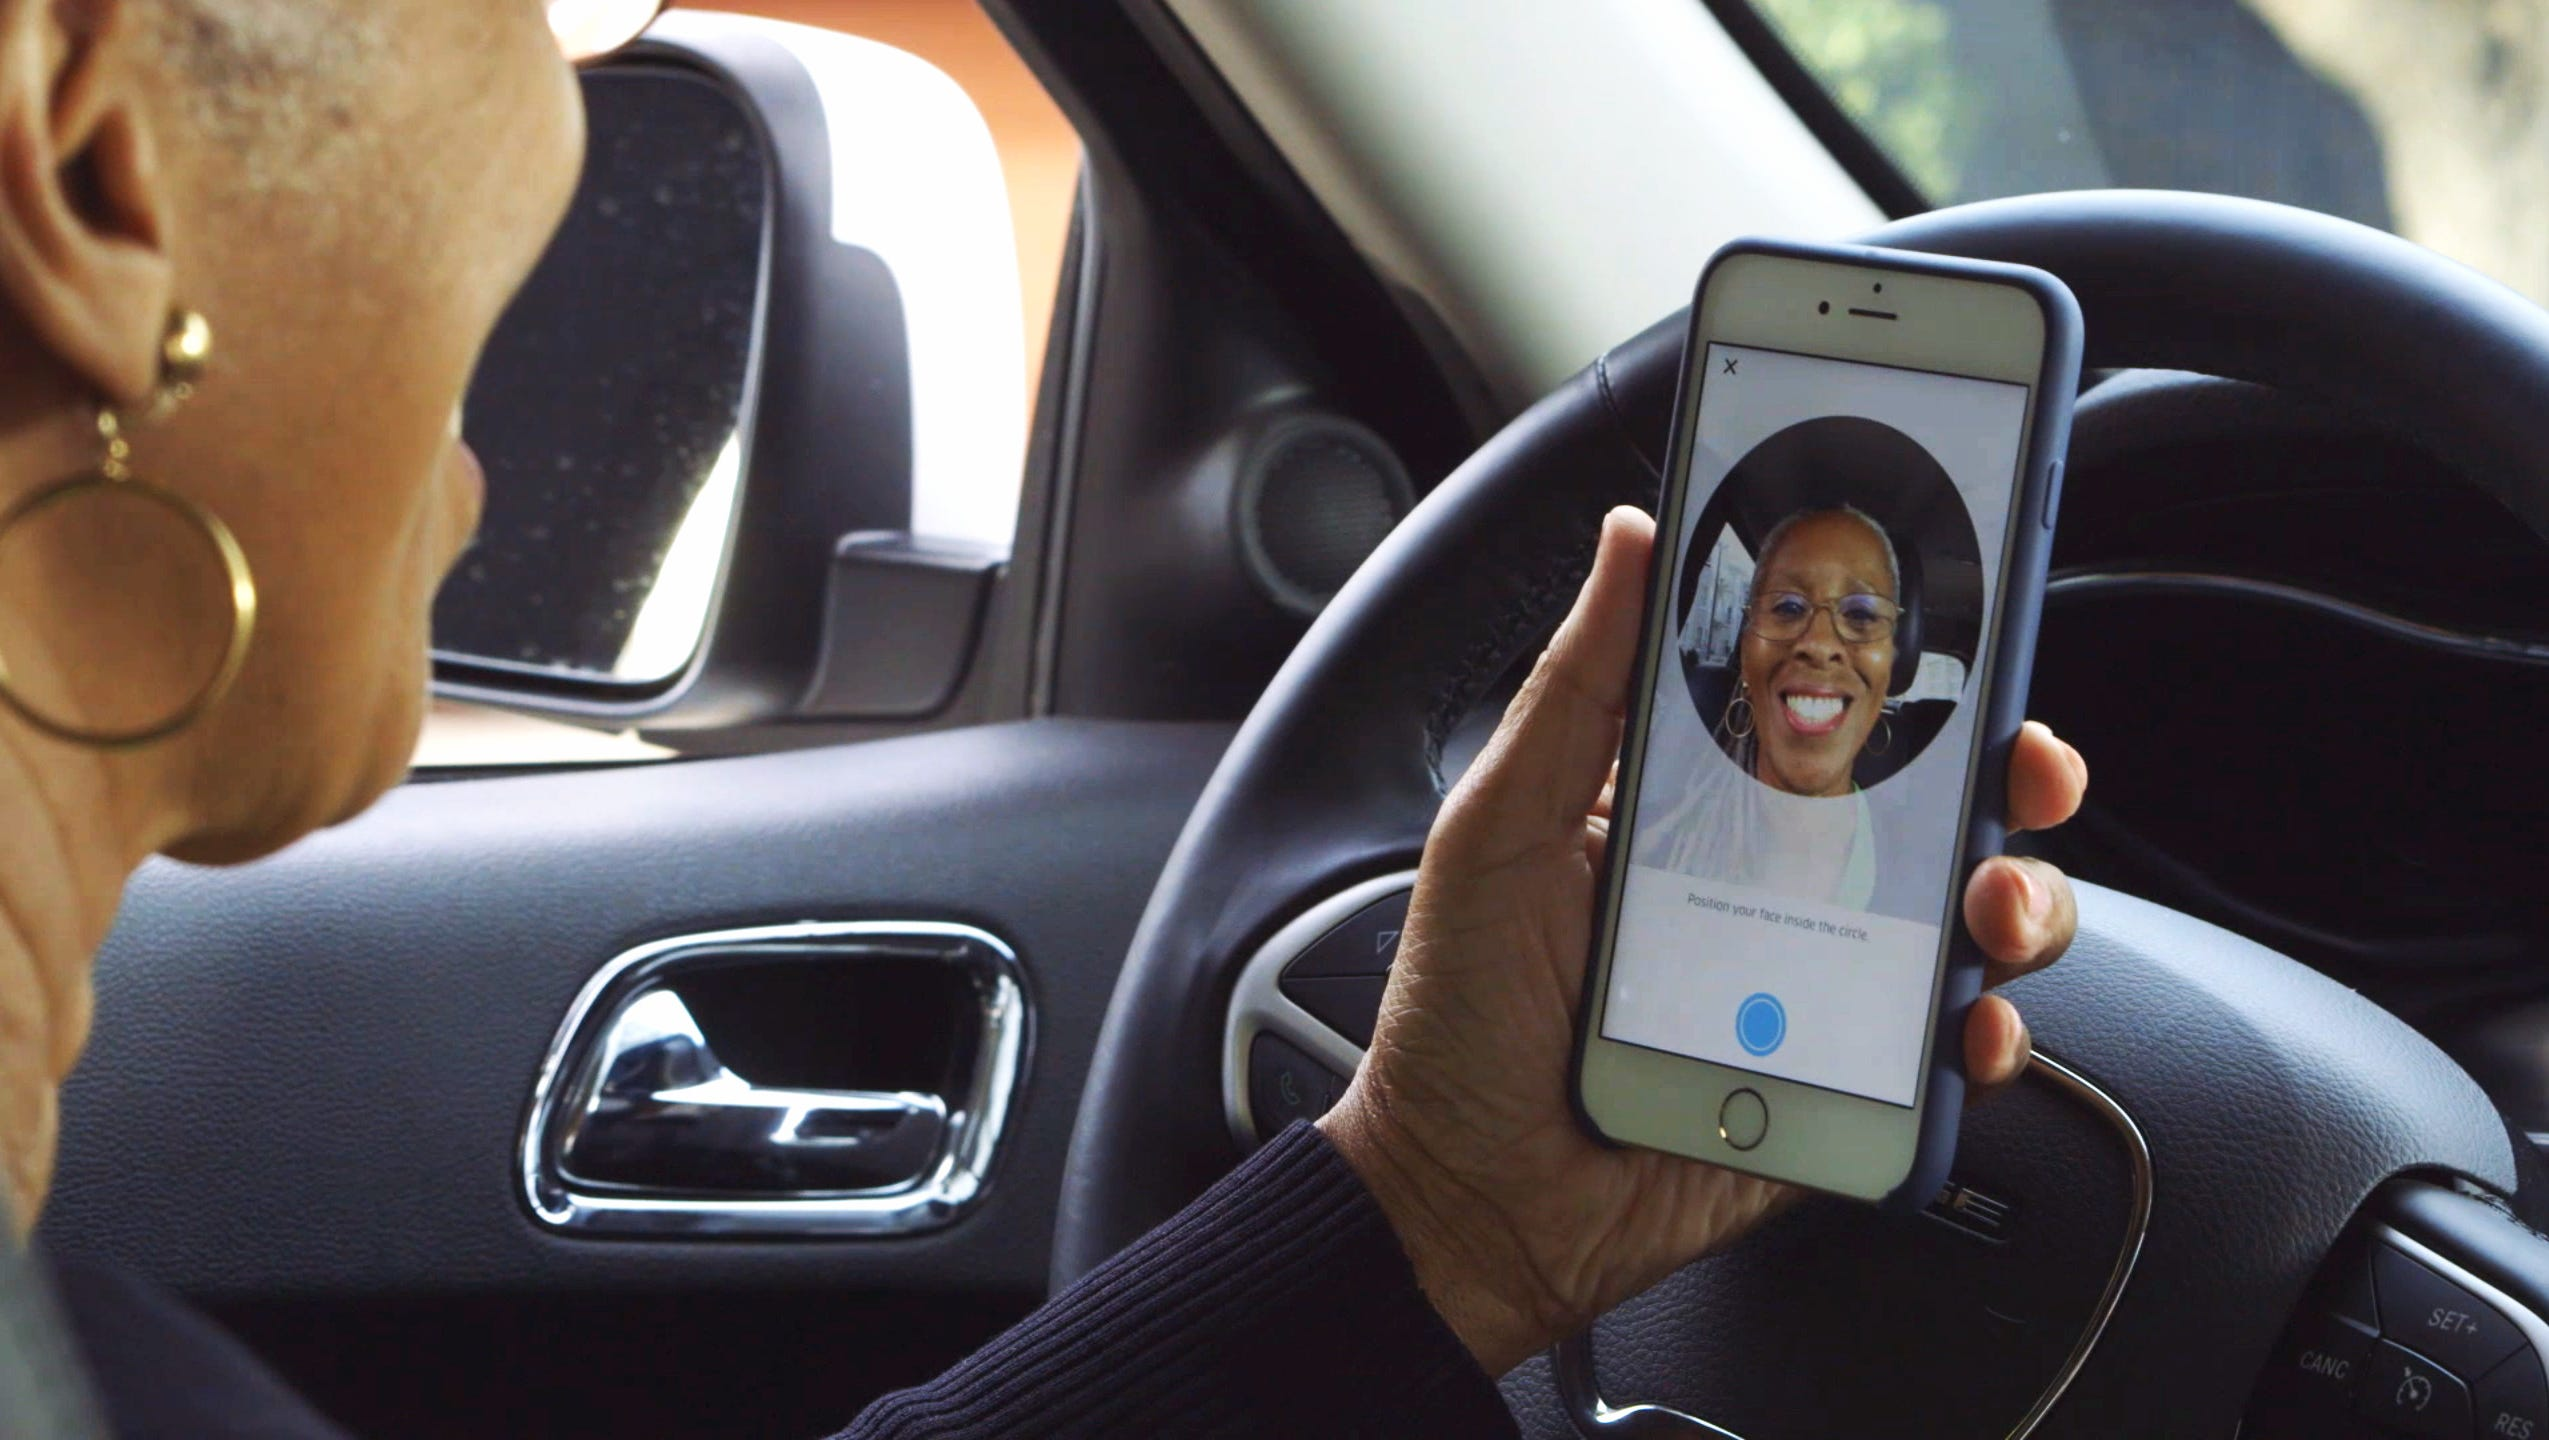 Uber Adds Driver ID Verification with Mandatory Selfie